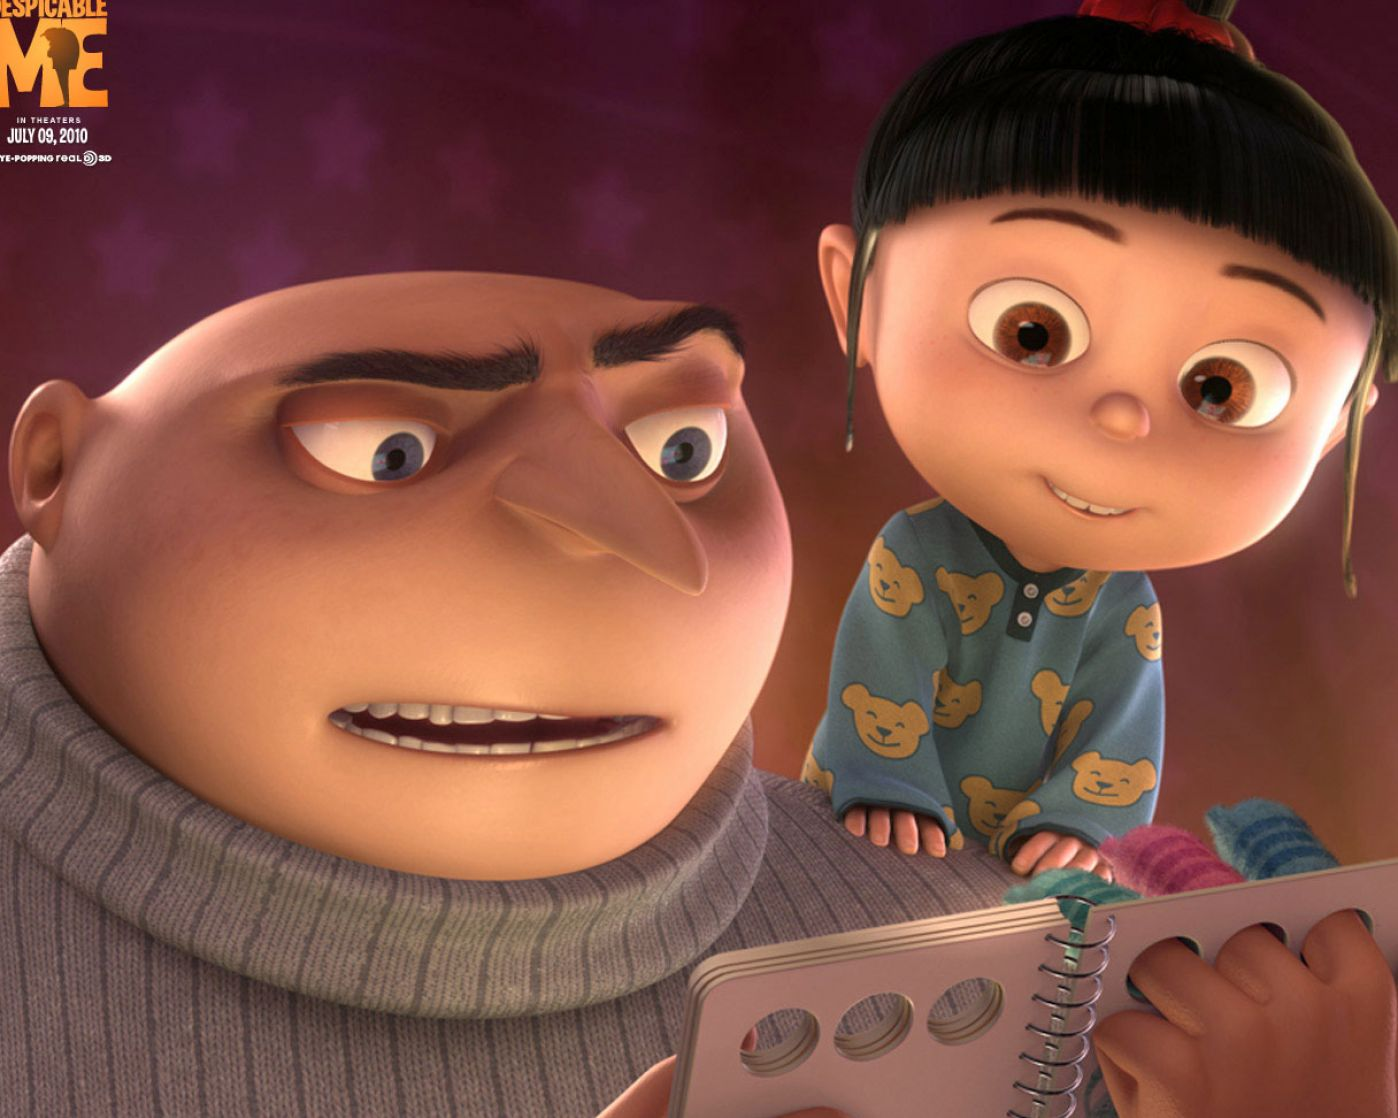 pics of the little girl from despicable me 2